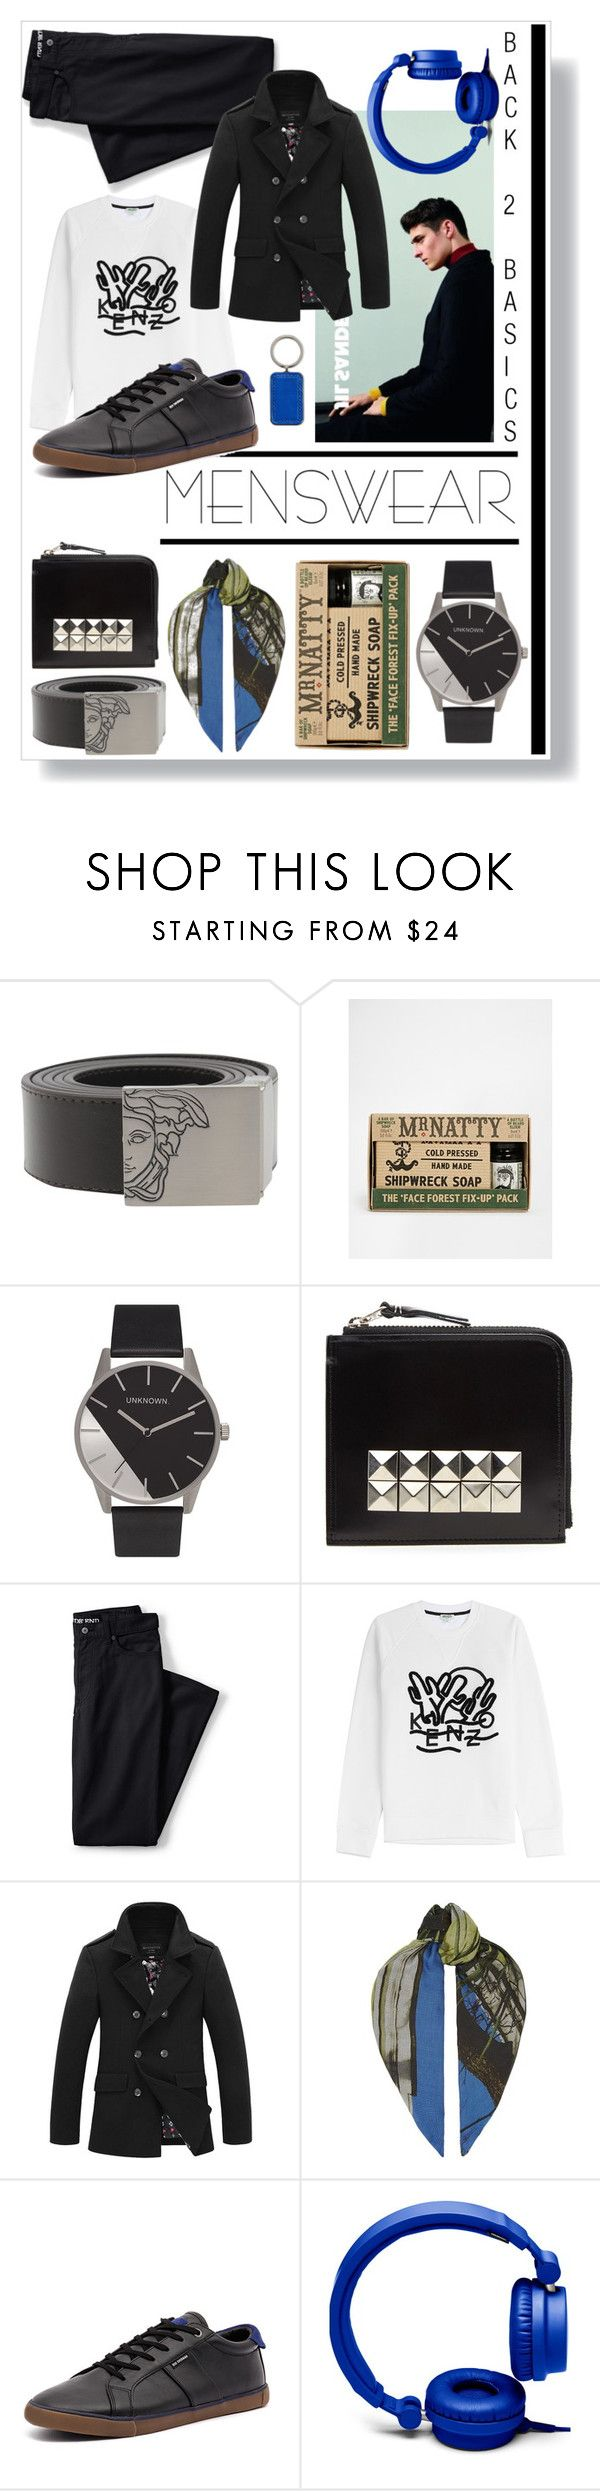 """""""Menswear Basics"""" by captainsilly ❤ liked on Polyvore featuring Versace, Mr Natty, Comme des Garçons, Lands' End, Kenzo, Paul Smith, Ben Sherman, Forever 21, Tumi and mens"""